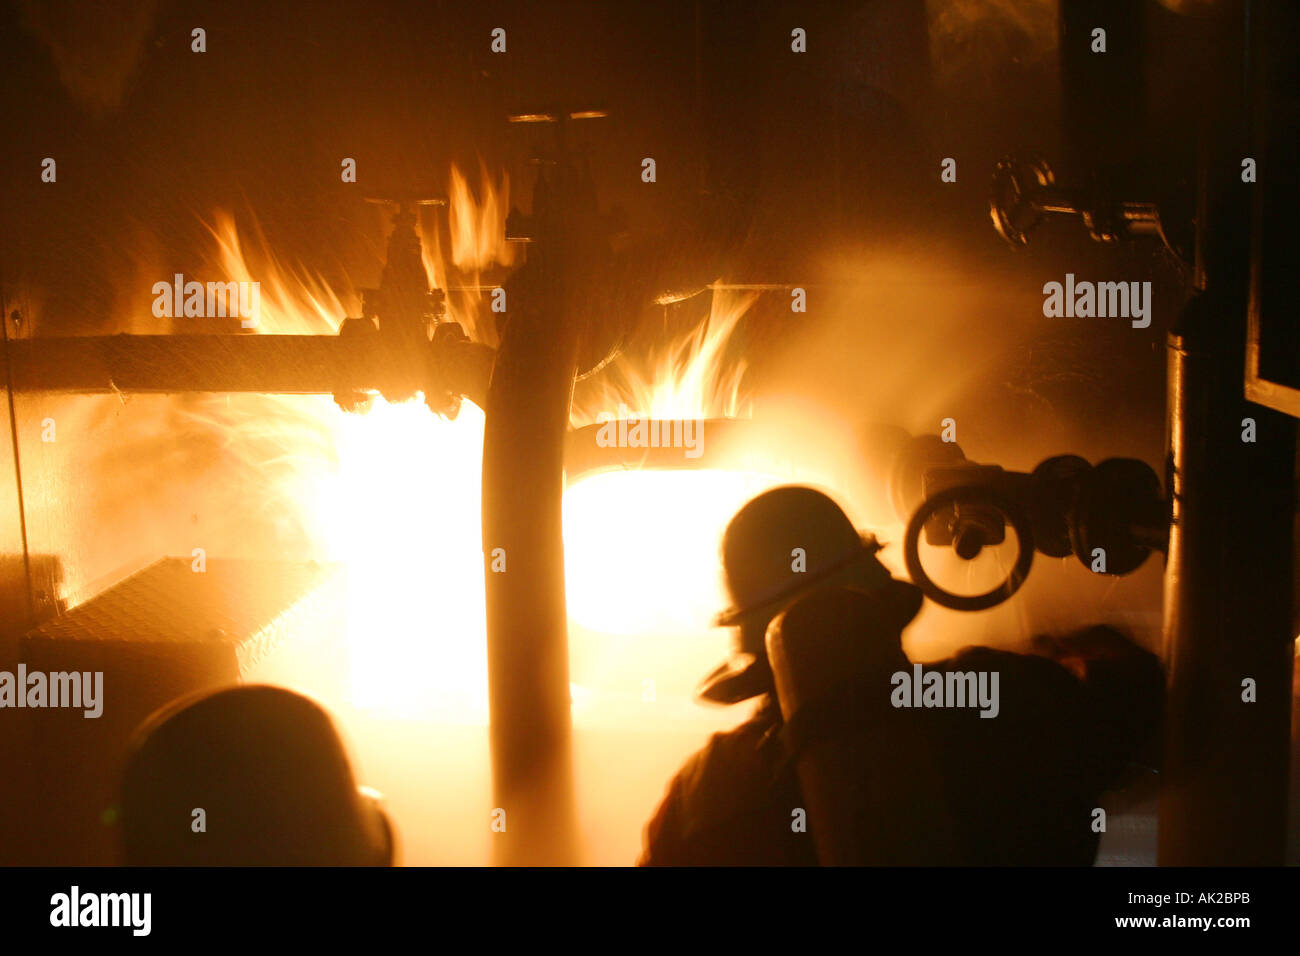 Firebrigade in action - Stock Image